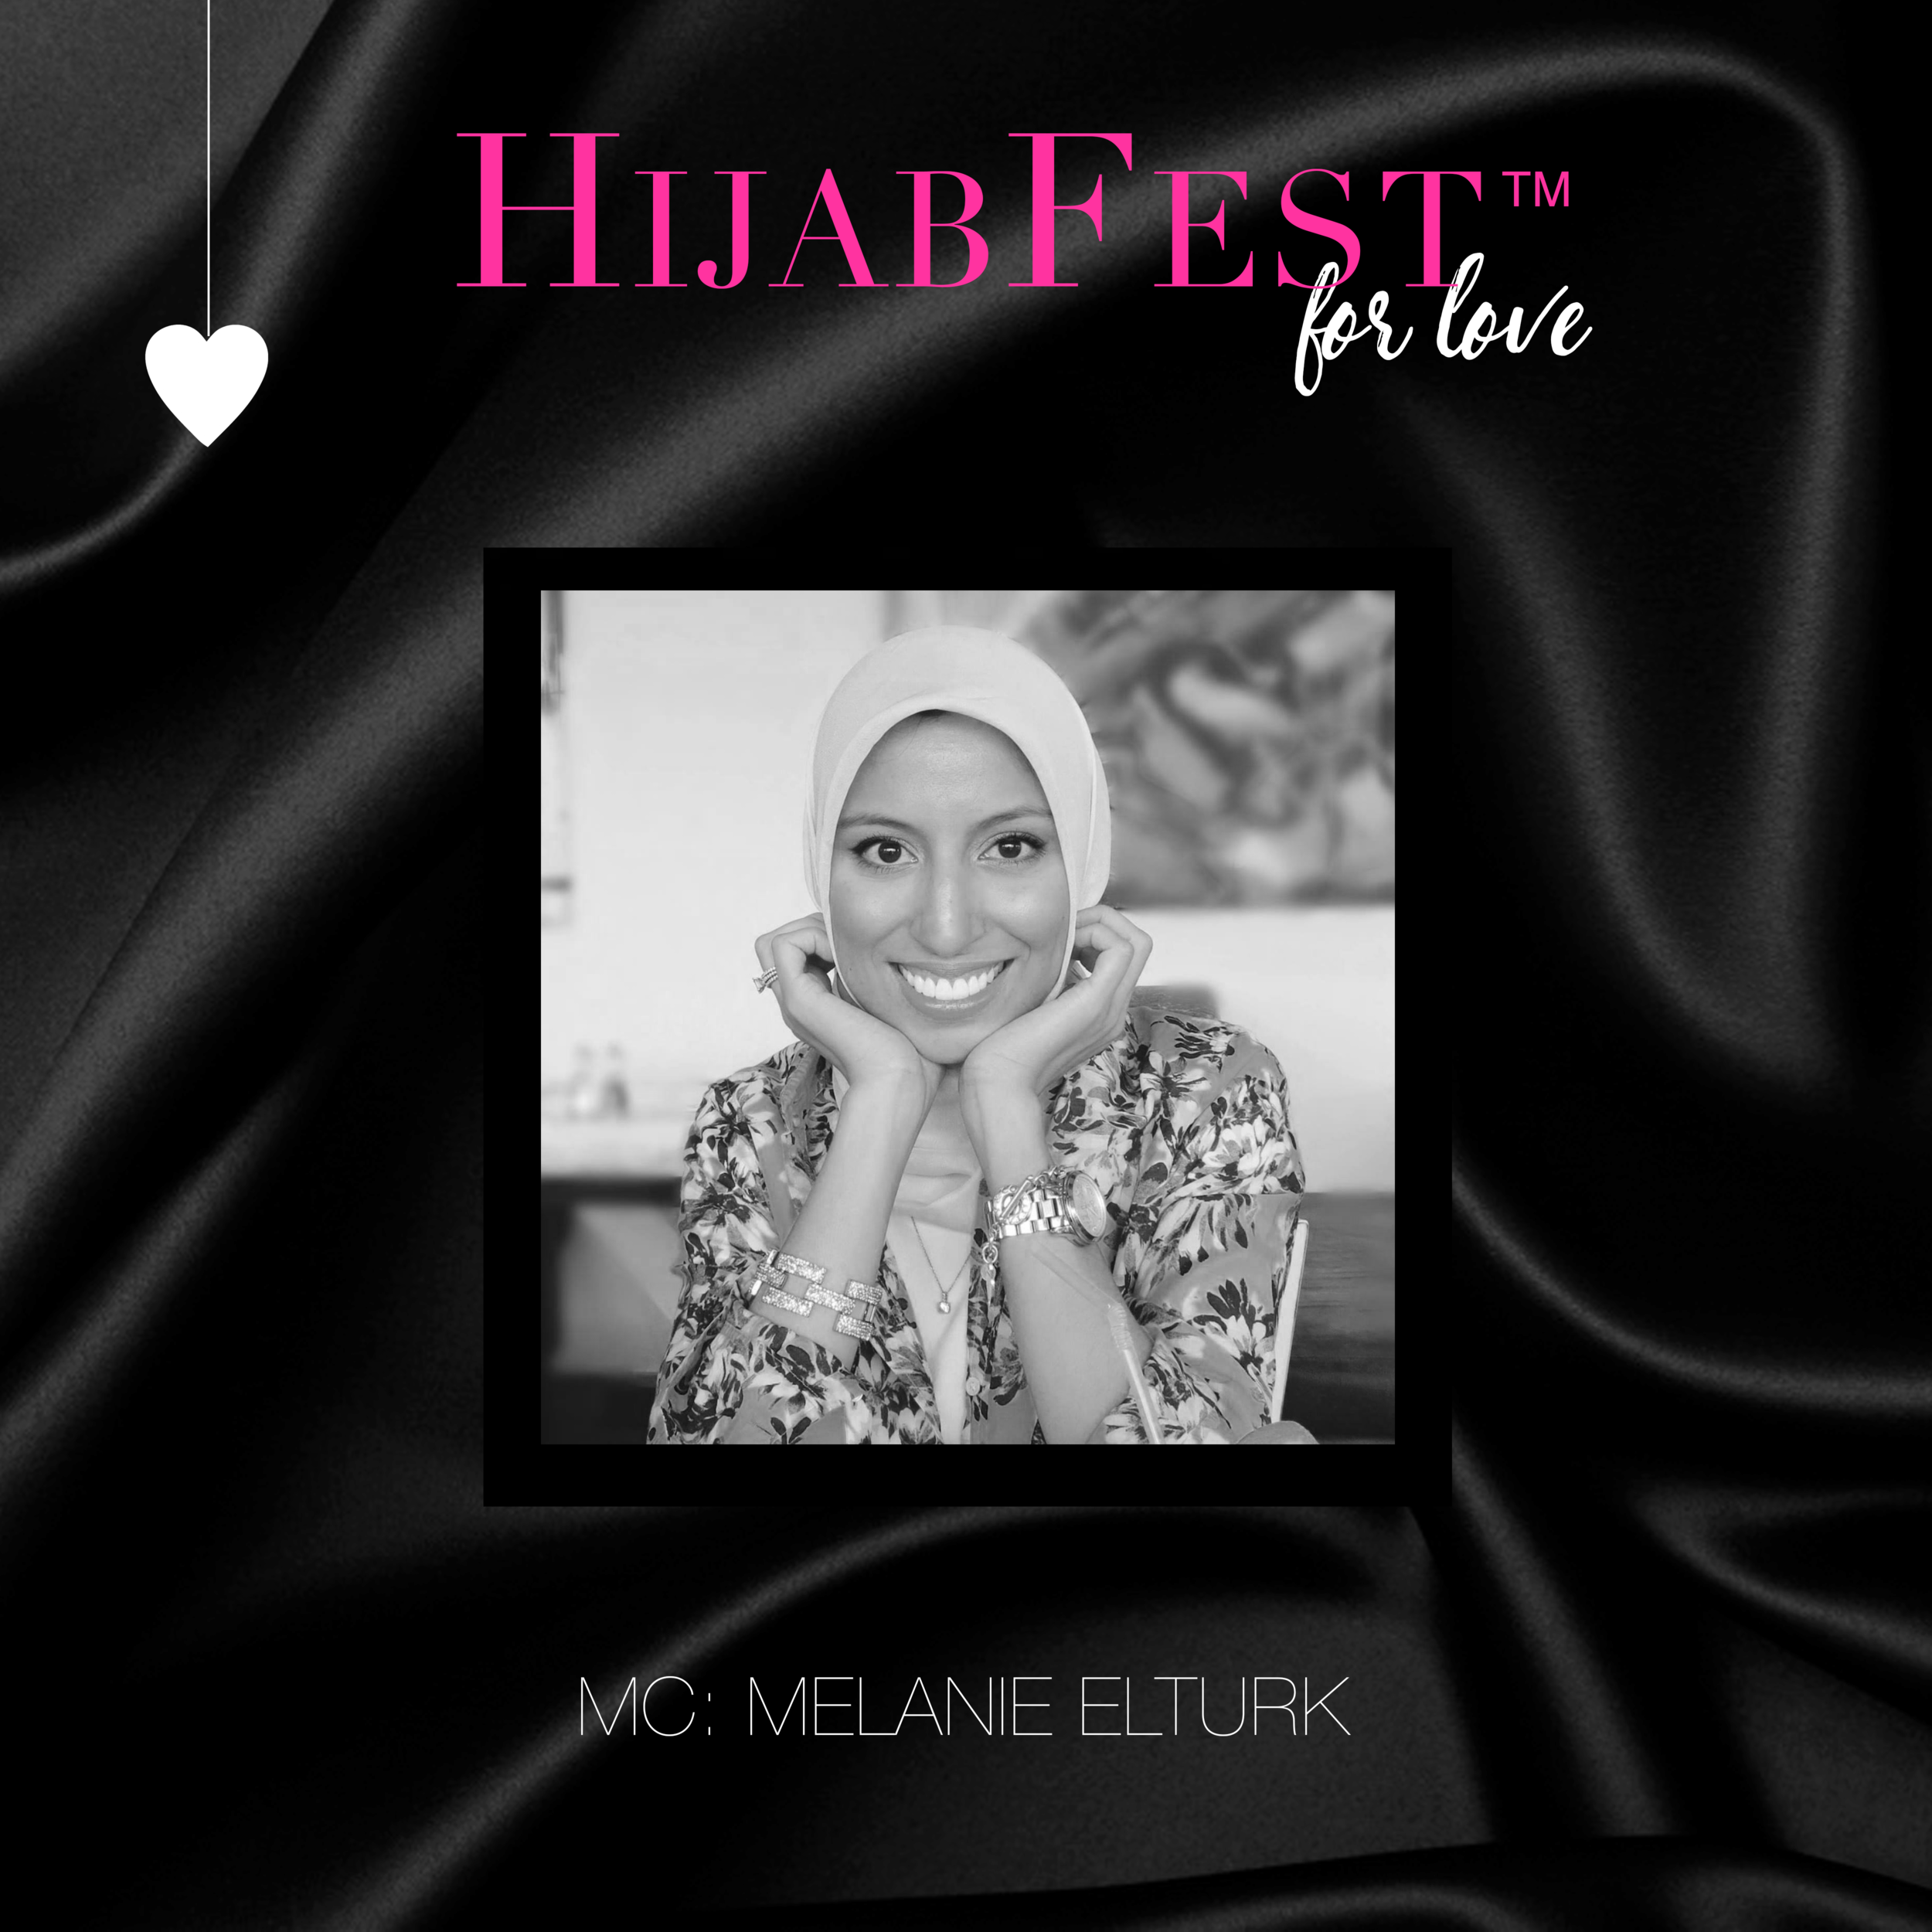 Melanie Elturk is the CEO of Haute Hijab, one of the largest U.S. brands for modest fashion. Melanie aims to empower hijab-wearing women worldwide, and in addition to her clothing and hijab line, she facilitates support for those struggling with hijab in addition to highlighting inspiring women who contribute to their communities in significant ways. By providing compelling and innovative products and connecting with her customers in a meaningful way, Melanie has propelled Haute Hijab from a cult favorite to a household name with a loyal following and dynamic social media presence. She is a regular contributor on ELLE.com, has been featured in the New York Times, NBC Today, USA Today, Buzzfeed and others. She is an industry expert in modest fashion and has spoken at the WIEF in Malaysia, GIES in Italy, and Istanbul Modest Fashion Week. #hfMC   For more info  click here